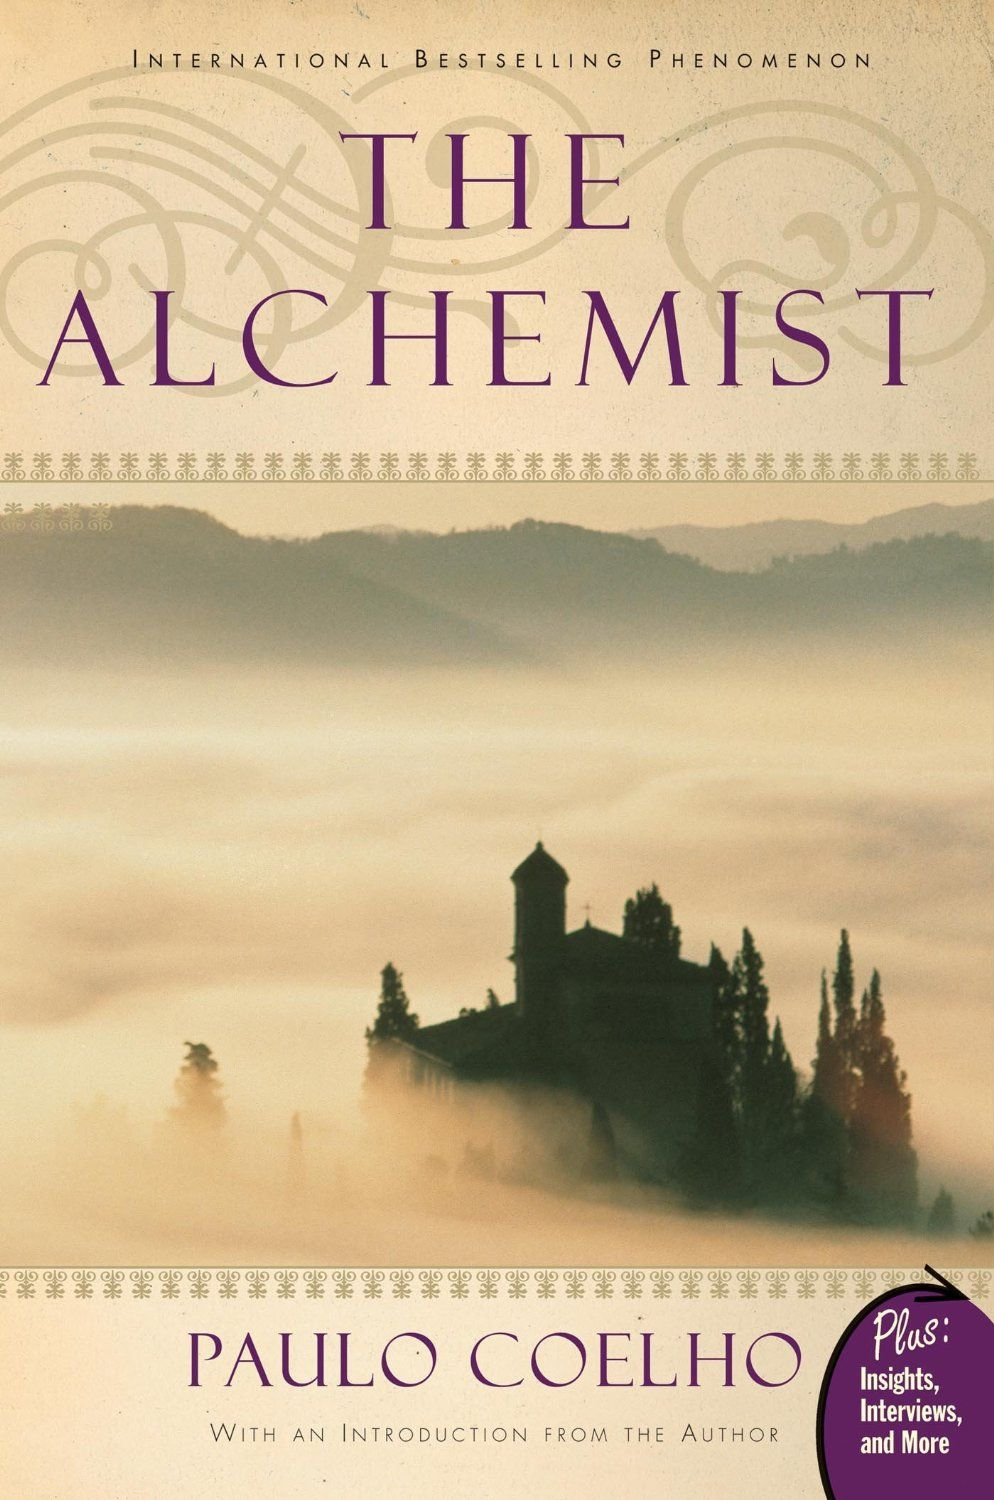 the alchemist paulo coelho paulo coelho s masterpiece tells the alchemist paulo coelho paulo coelho s masterpiece tells the magical story of santiago